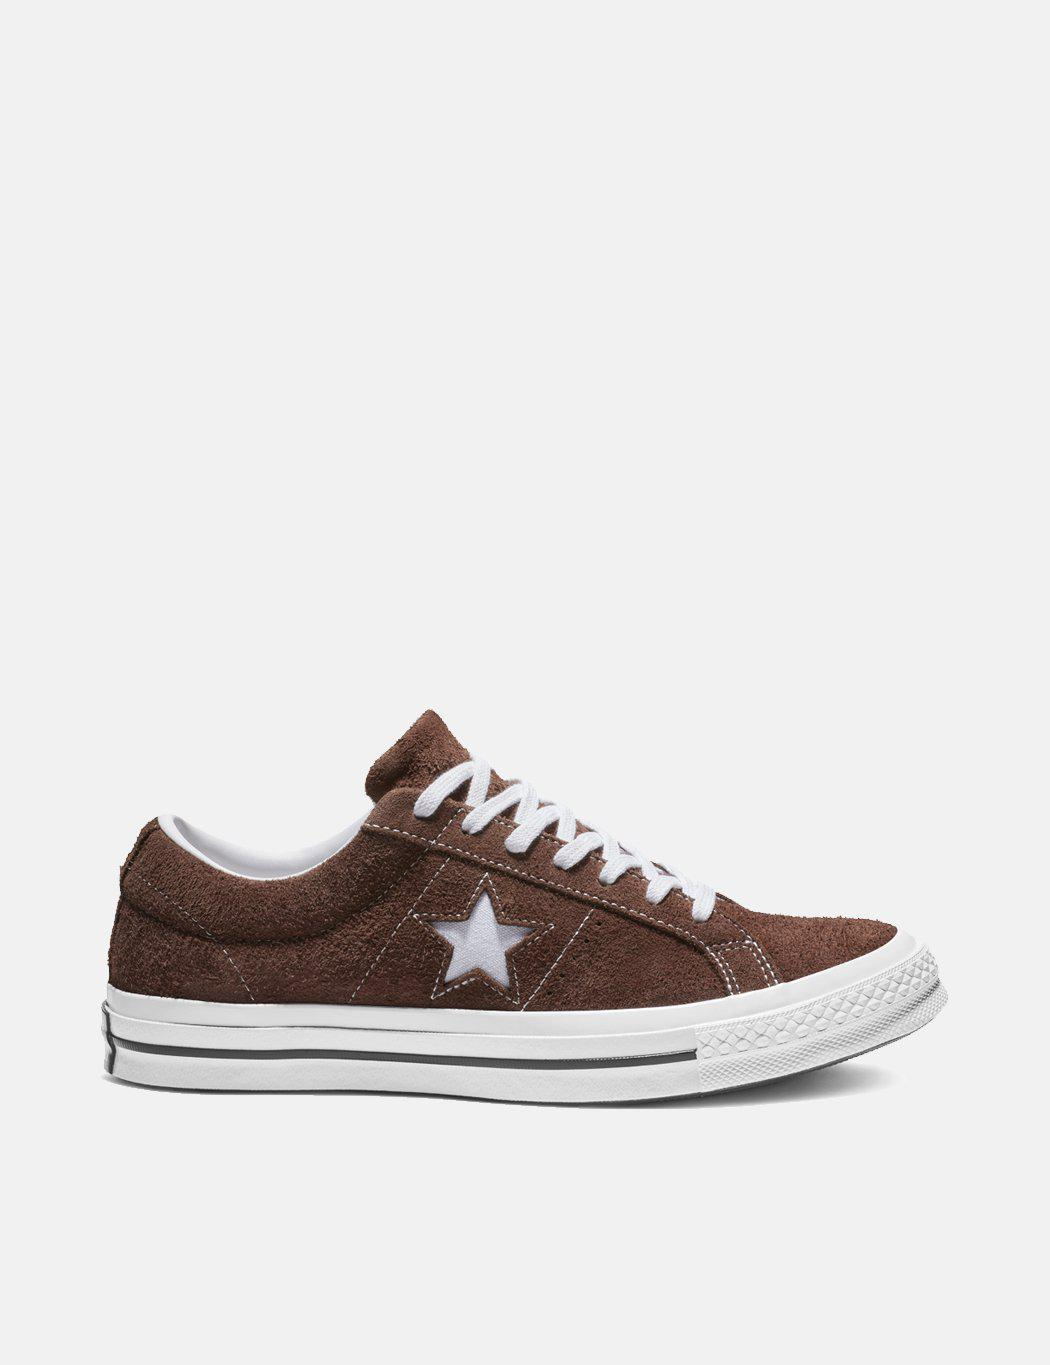 b27fb0fcd4c6 Converse One Star Ox Low Suede (162573c) in Brown for Men - Save 62 ...